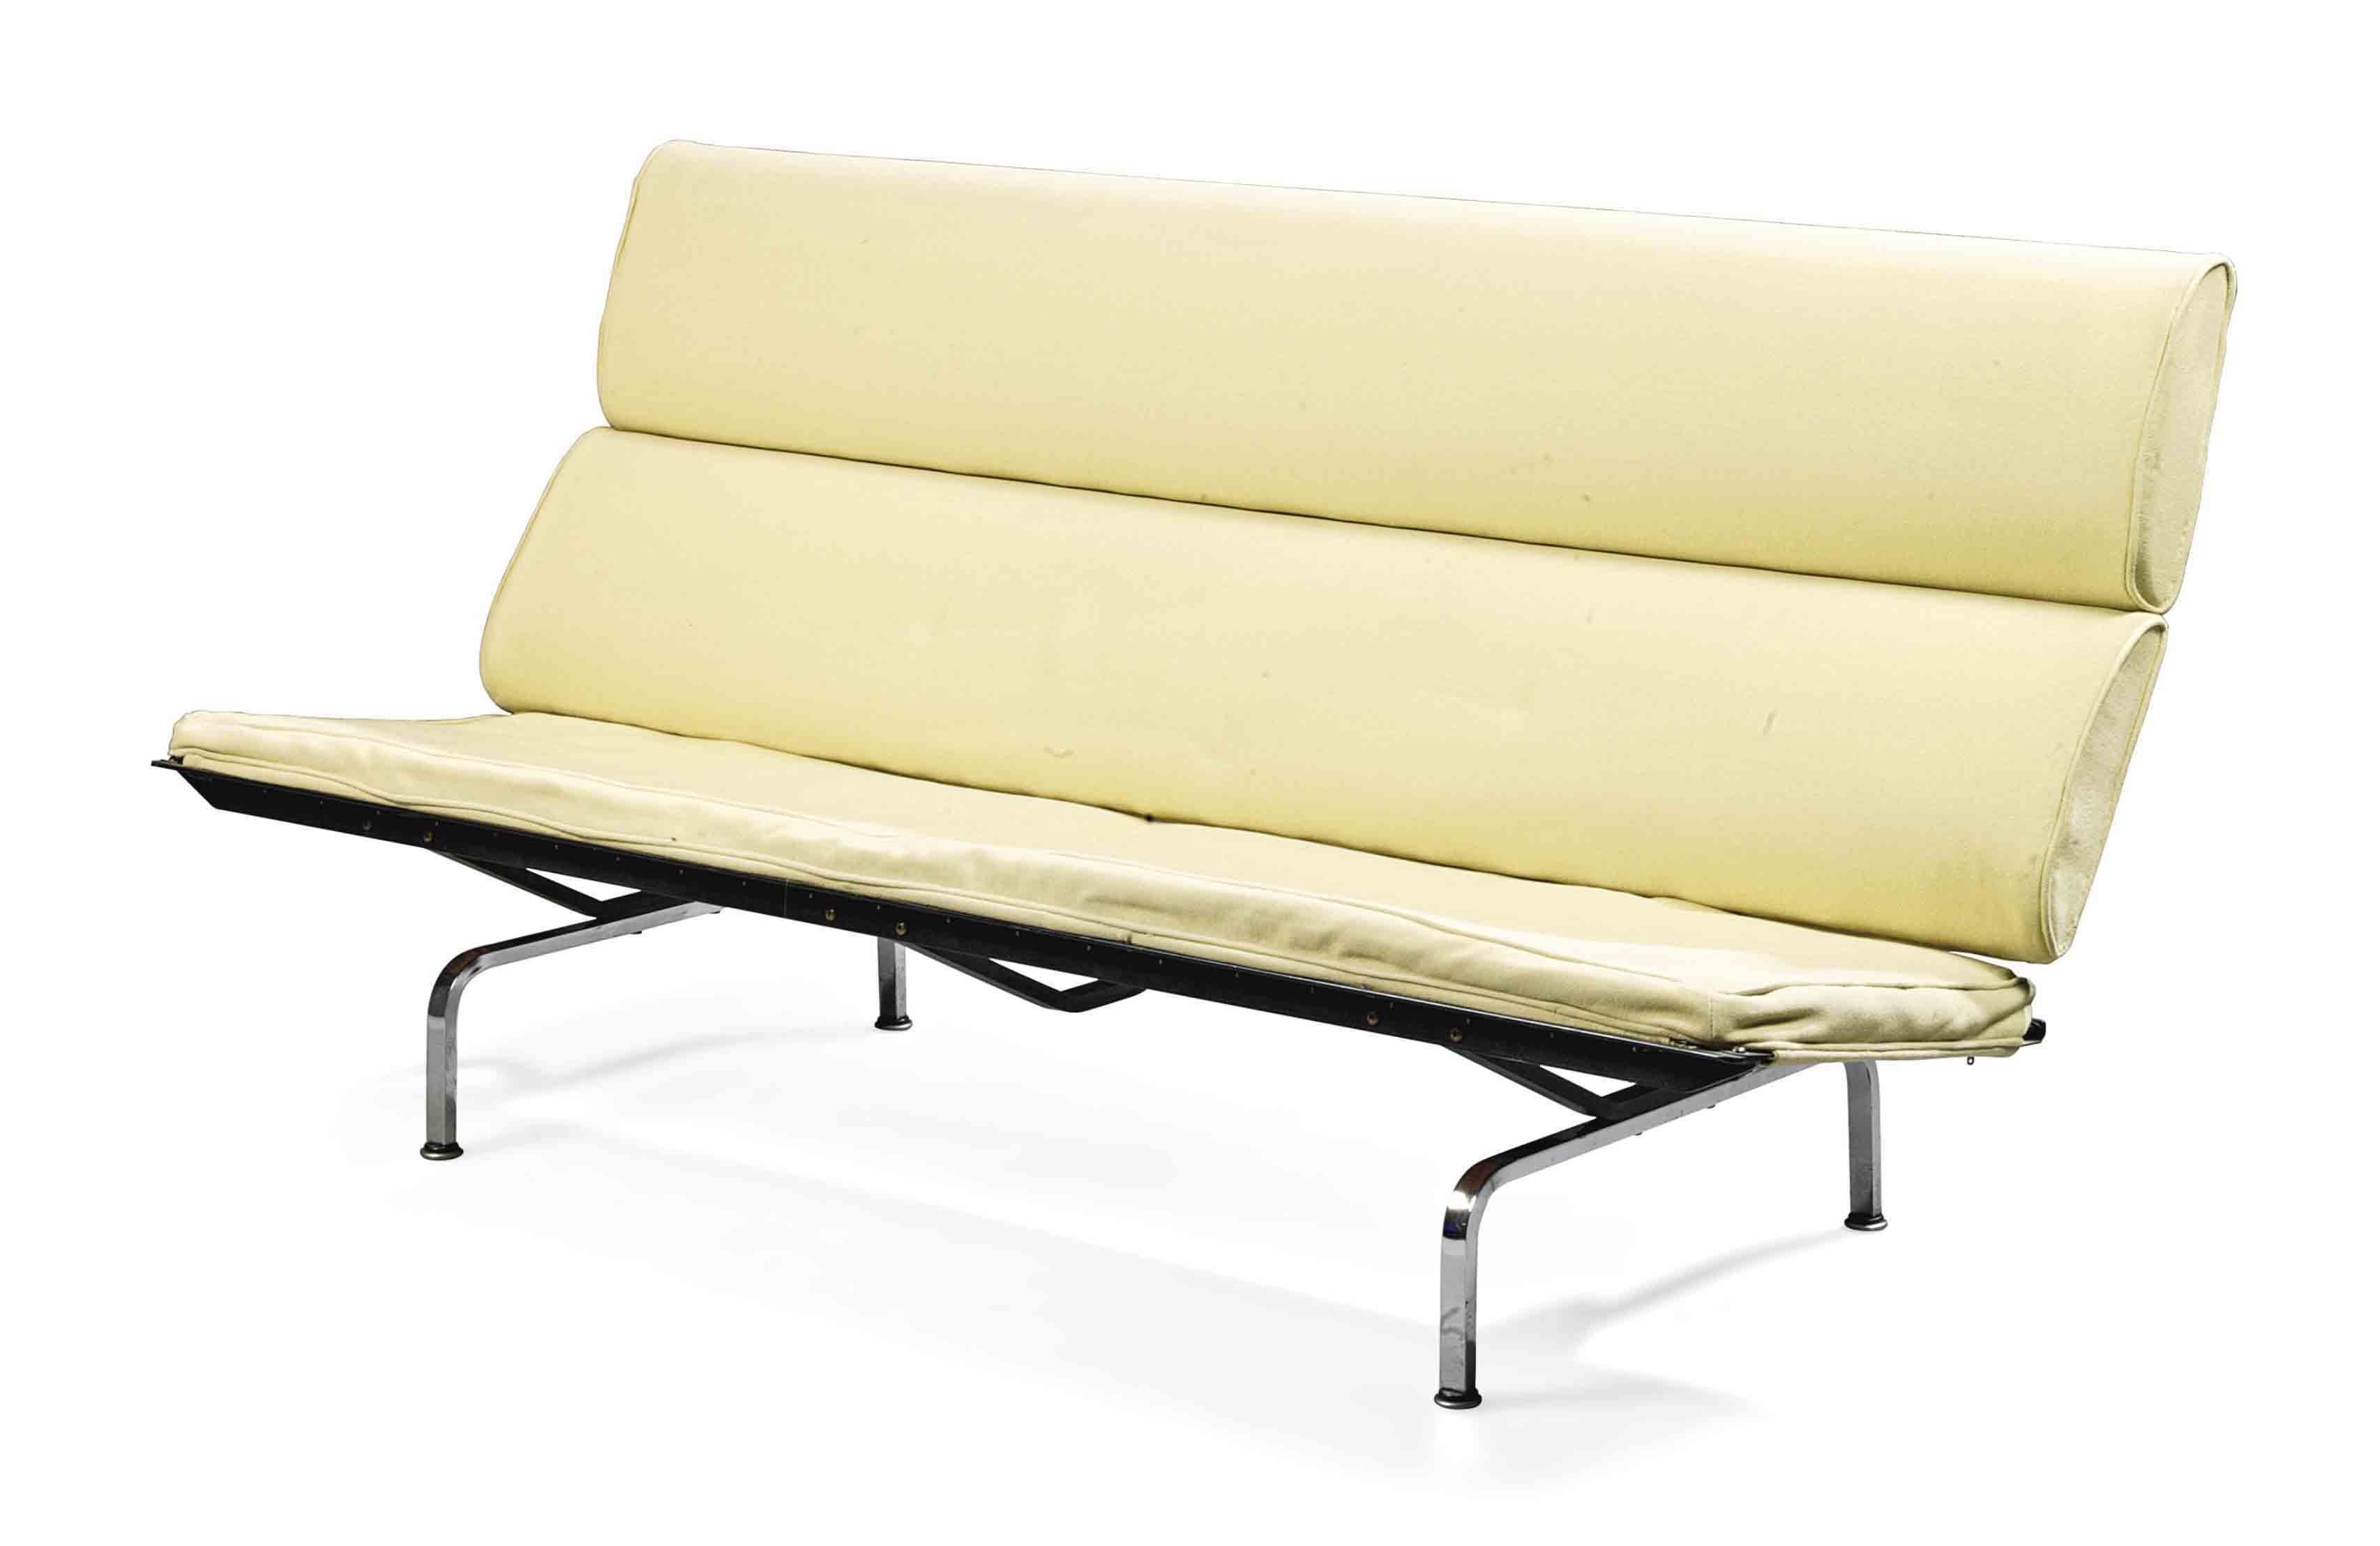 eames sofa compact knockoff white chesterfield with crystals a charles and ray 39sofa 39 designed 1954